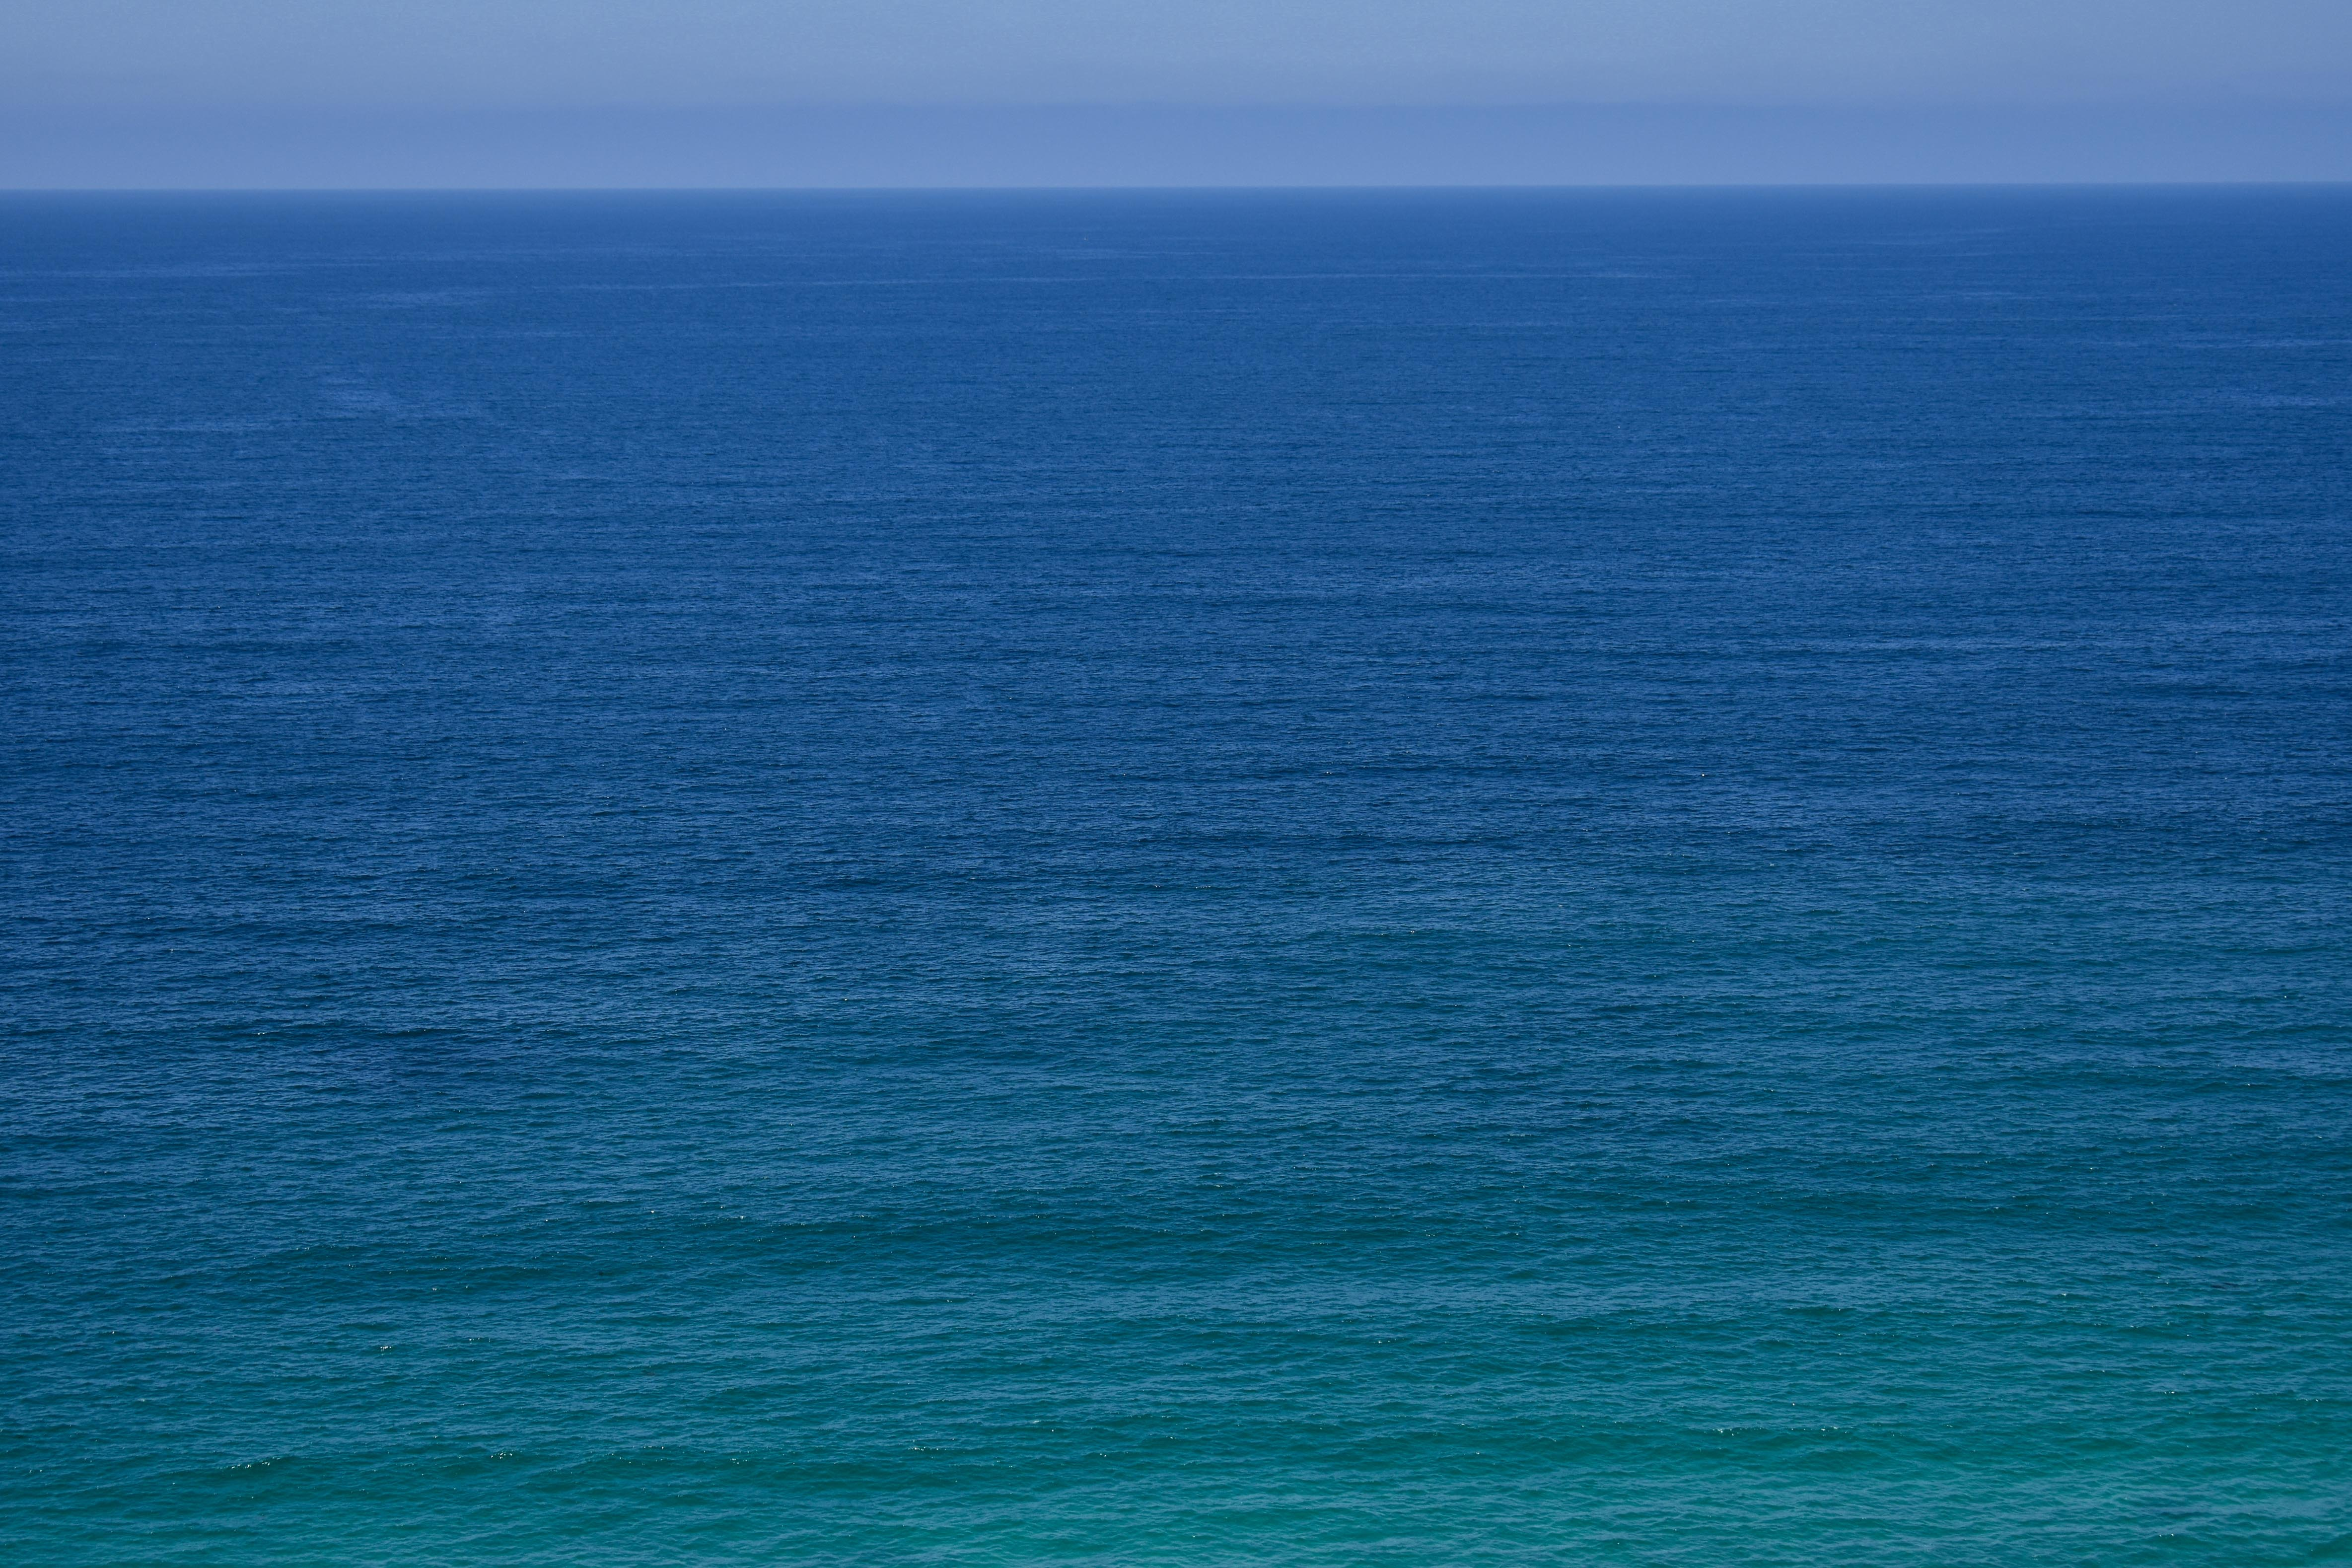 the Pacific Ocean on a sunny day